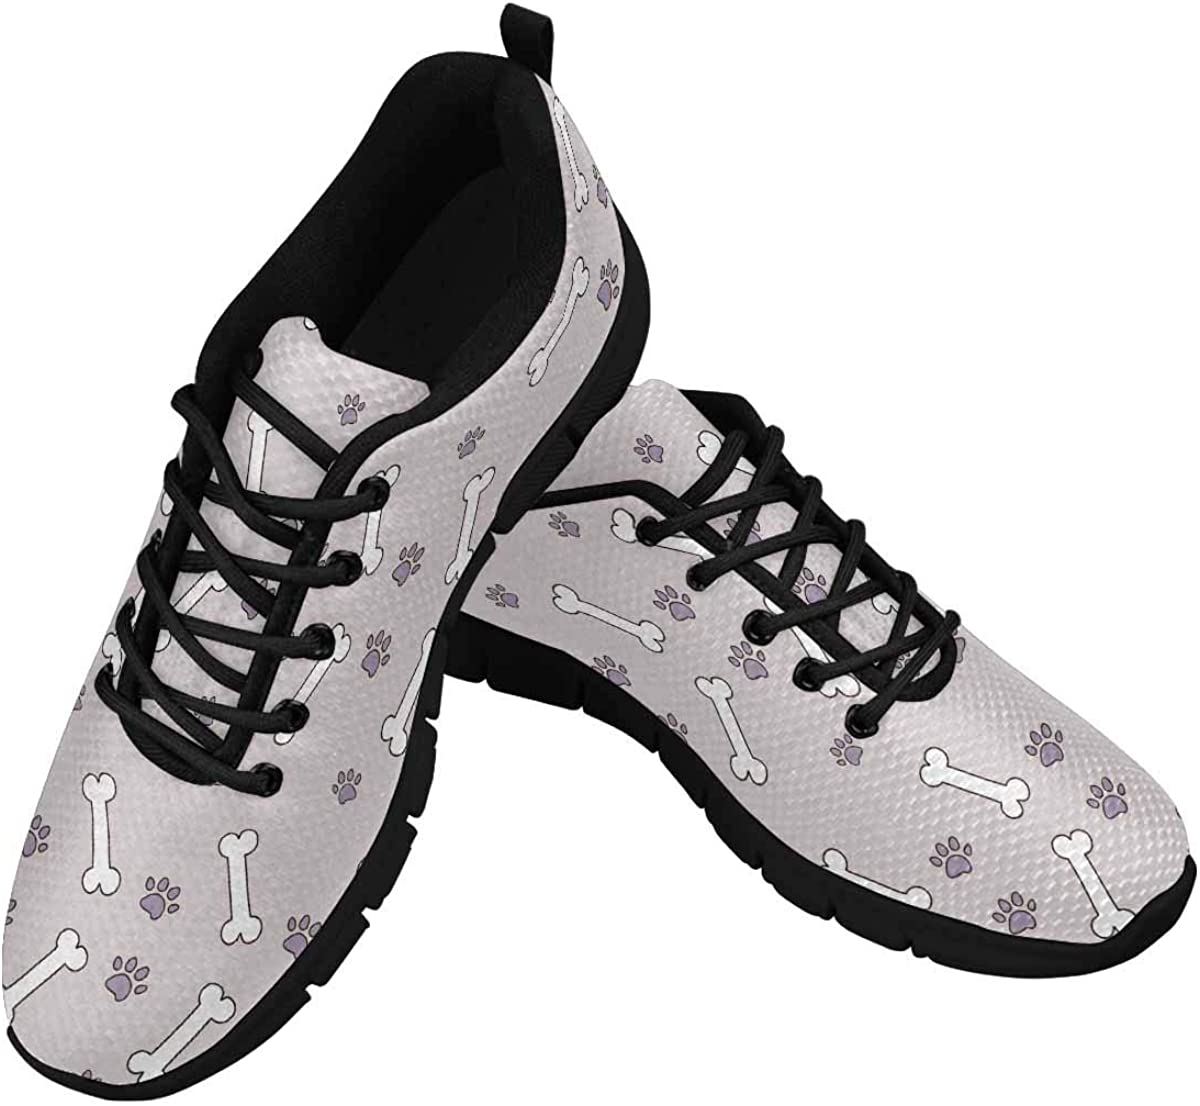 INTERESTPRINT White Bones, Lilac Traces of Animals Women's Walking Shoes Lightweight Casual Running Sneakers